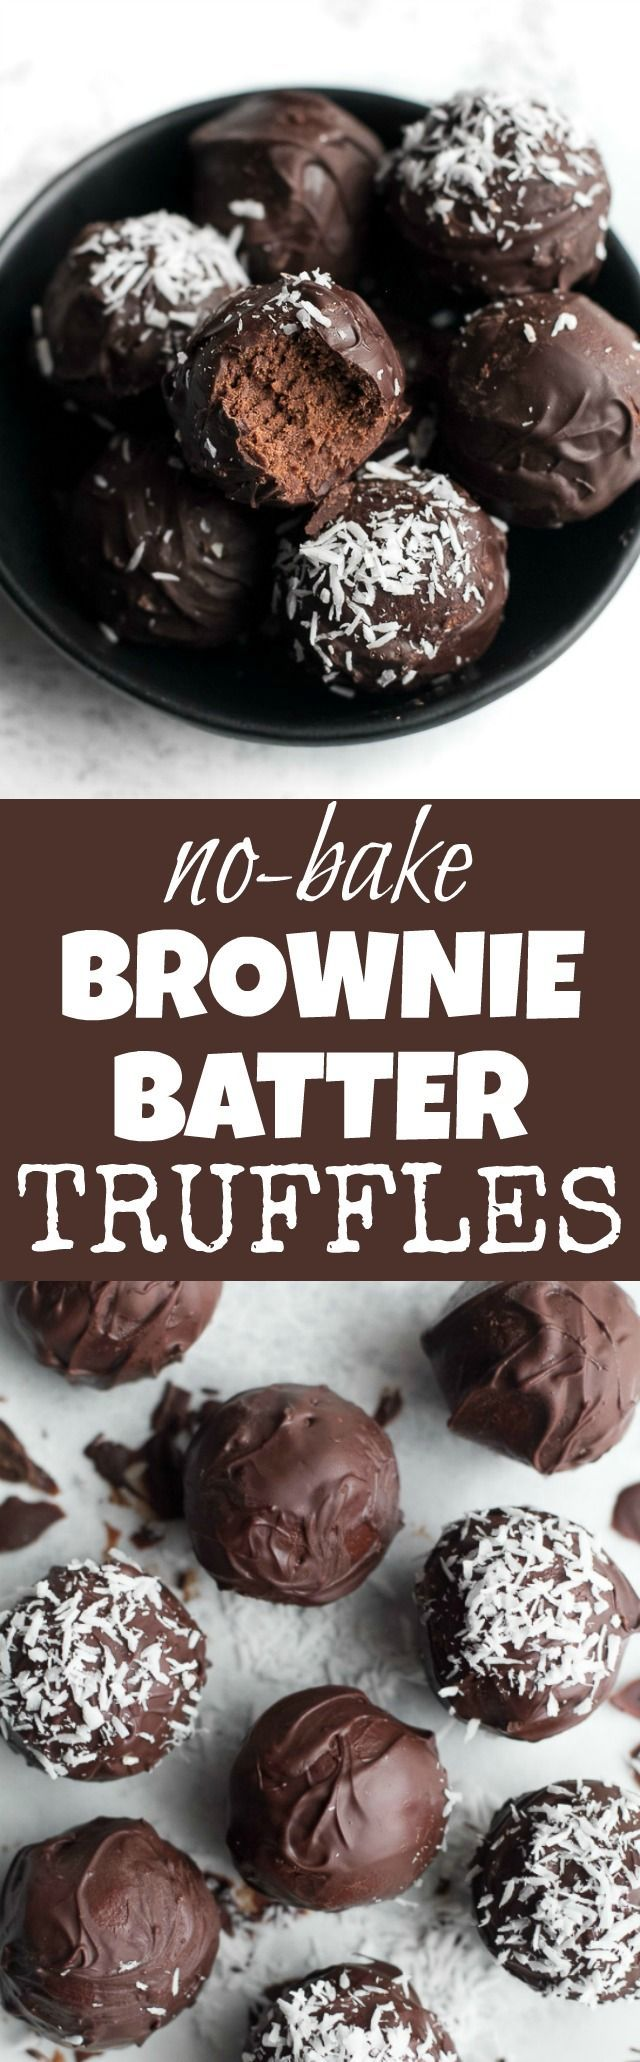 Healthy No Bake Brownie Batter Truffles that taste and feel just like a batch of soft-baked brownies but are made with NO flour, oil, eggs, or refined sugar! | runningwithspoons.com